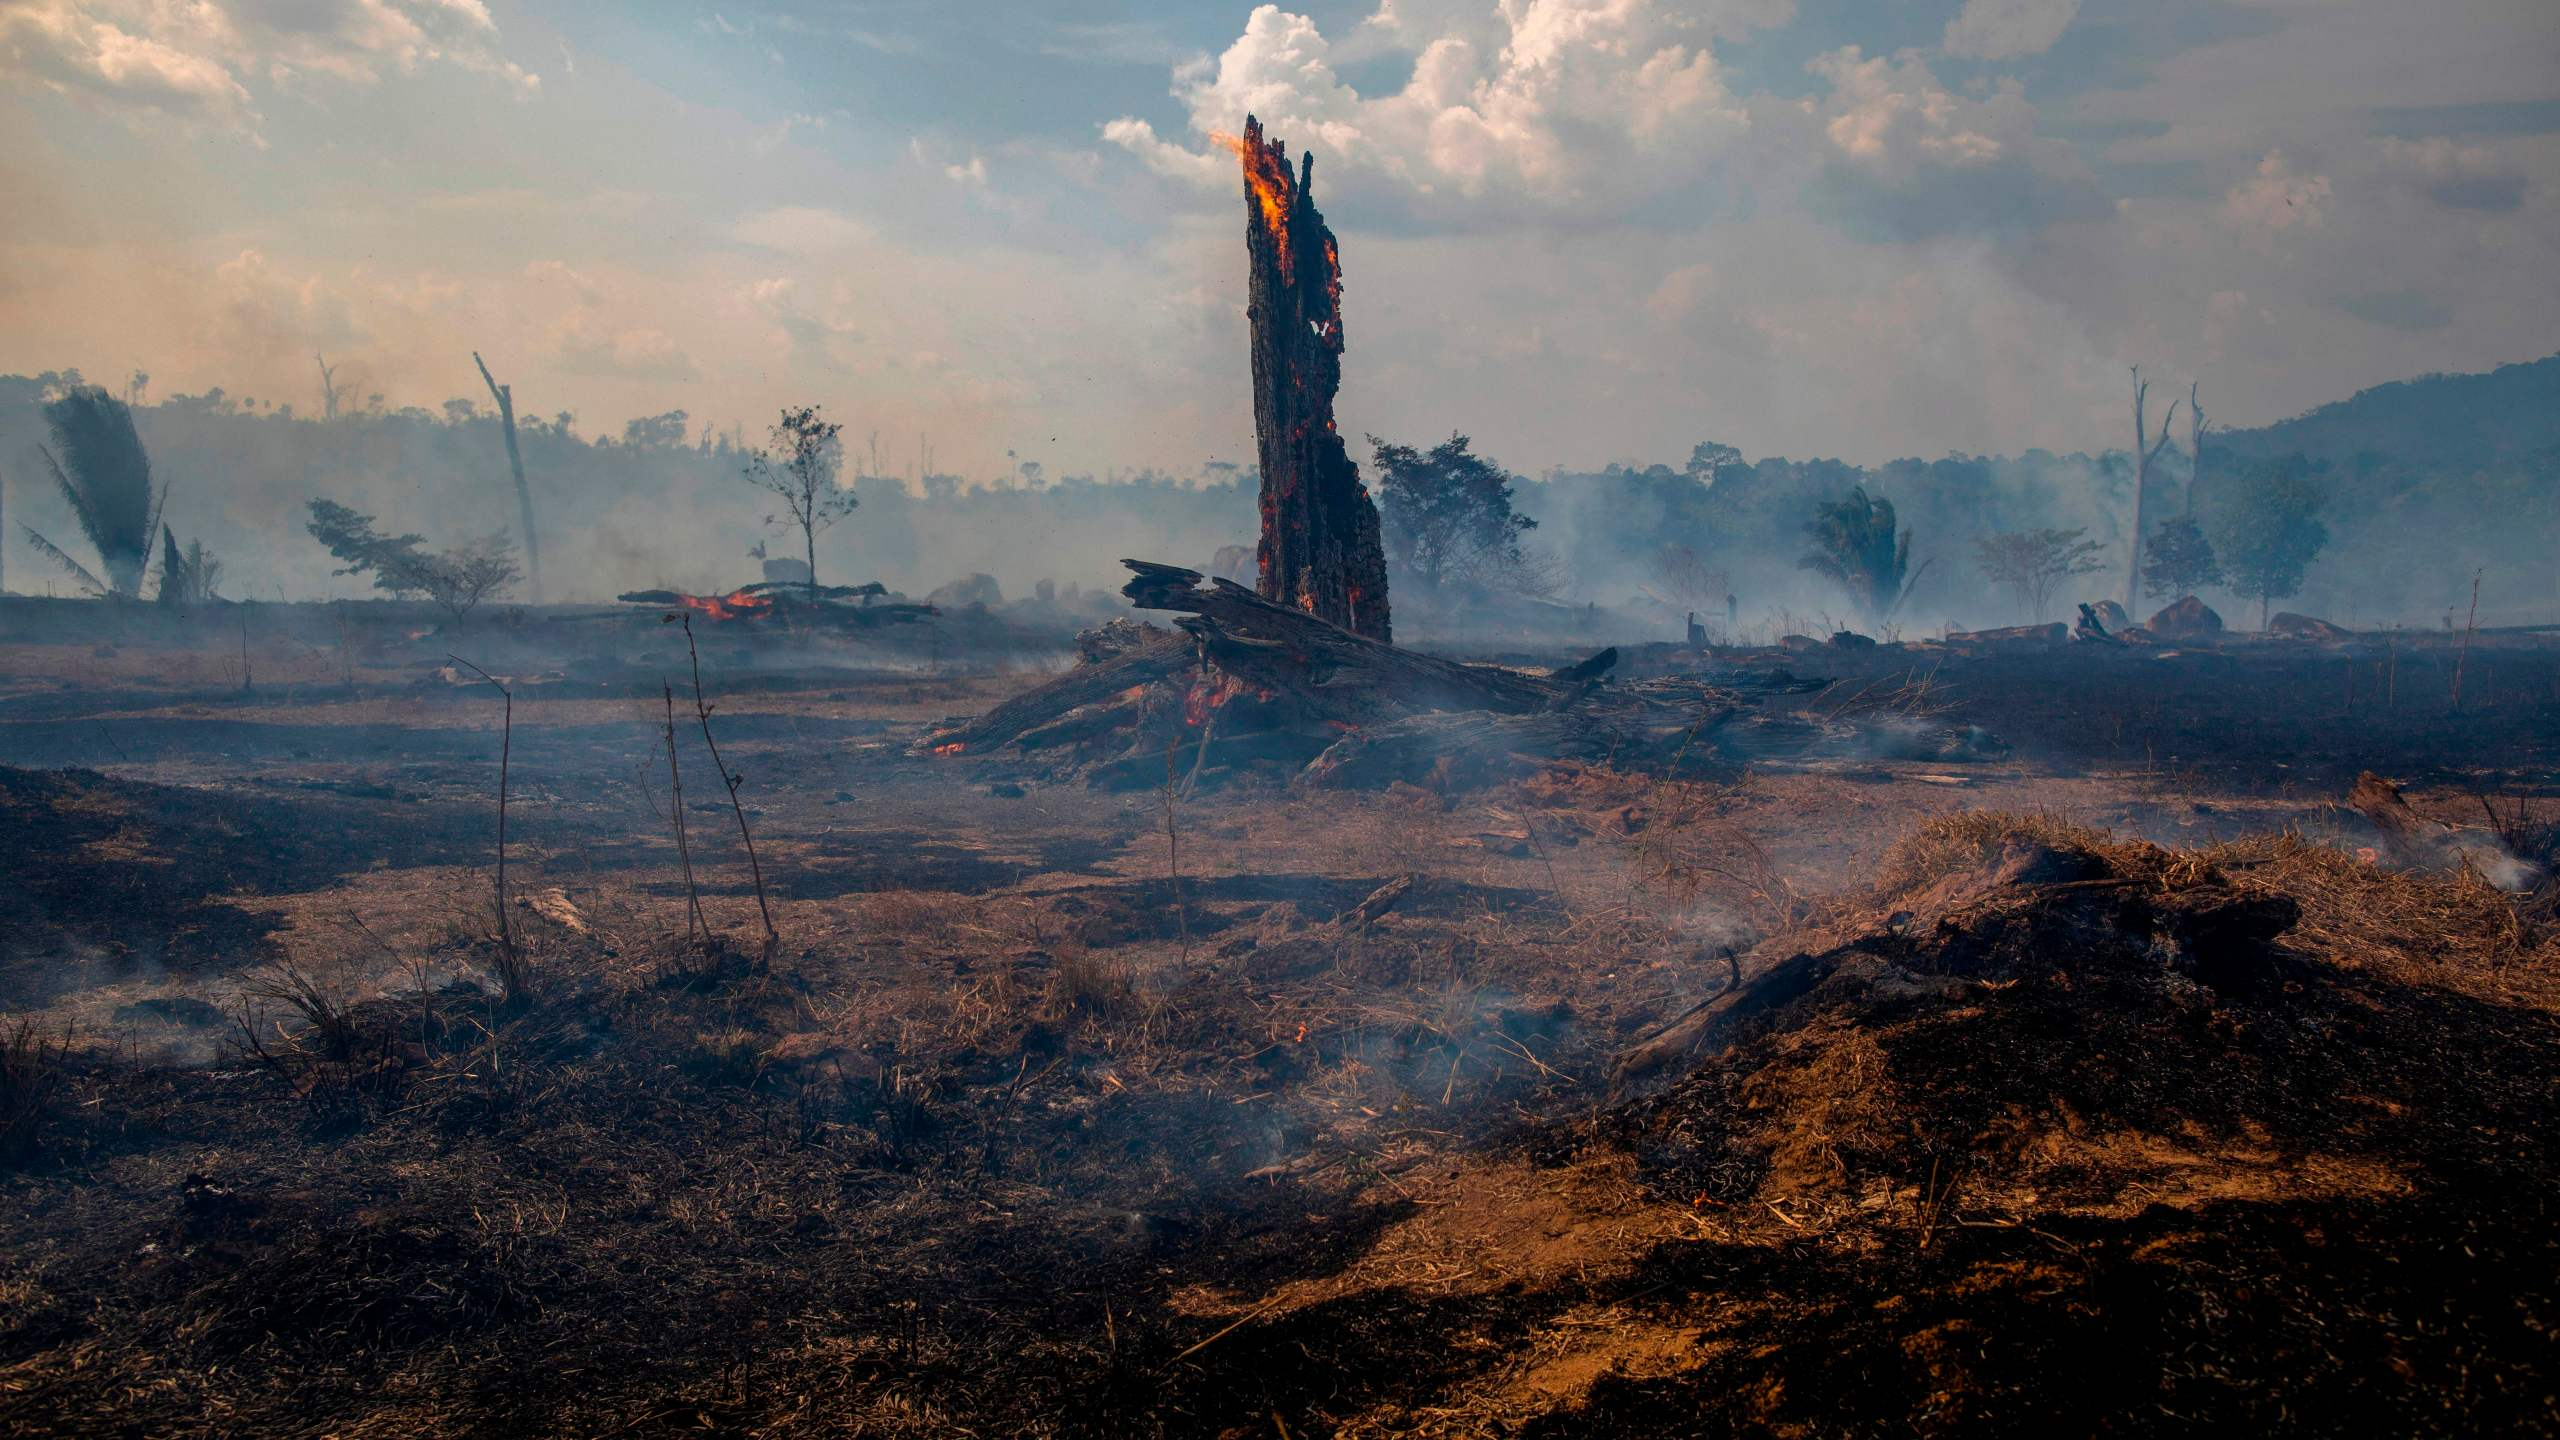 View of a burnt area of forest in Altamira, Para state, Brazil, oin the Amazon basin, on August 27, 2019. (Credit: JOAO LAET/AFP/Getty Images)